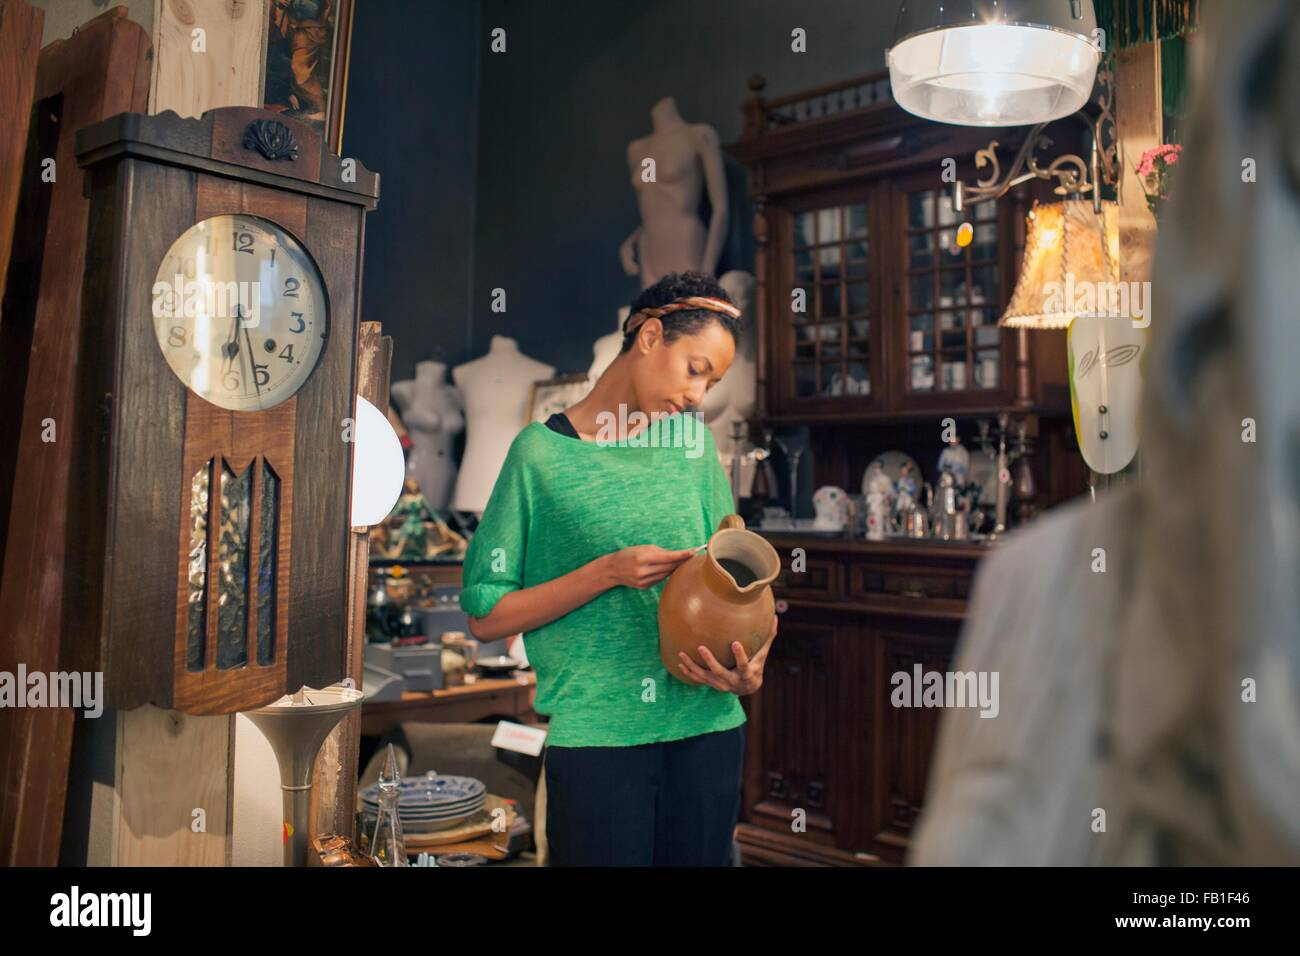 Young woman looking at jug price ticket in vintage shop - Stock Image